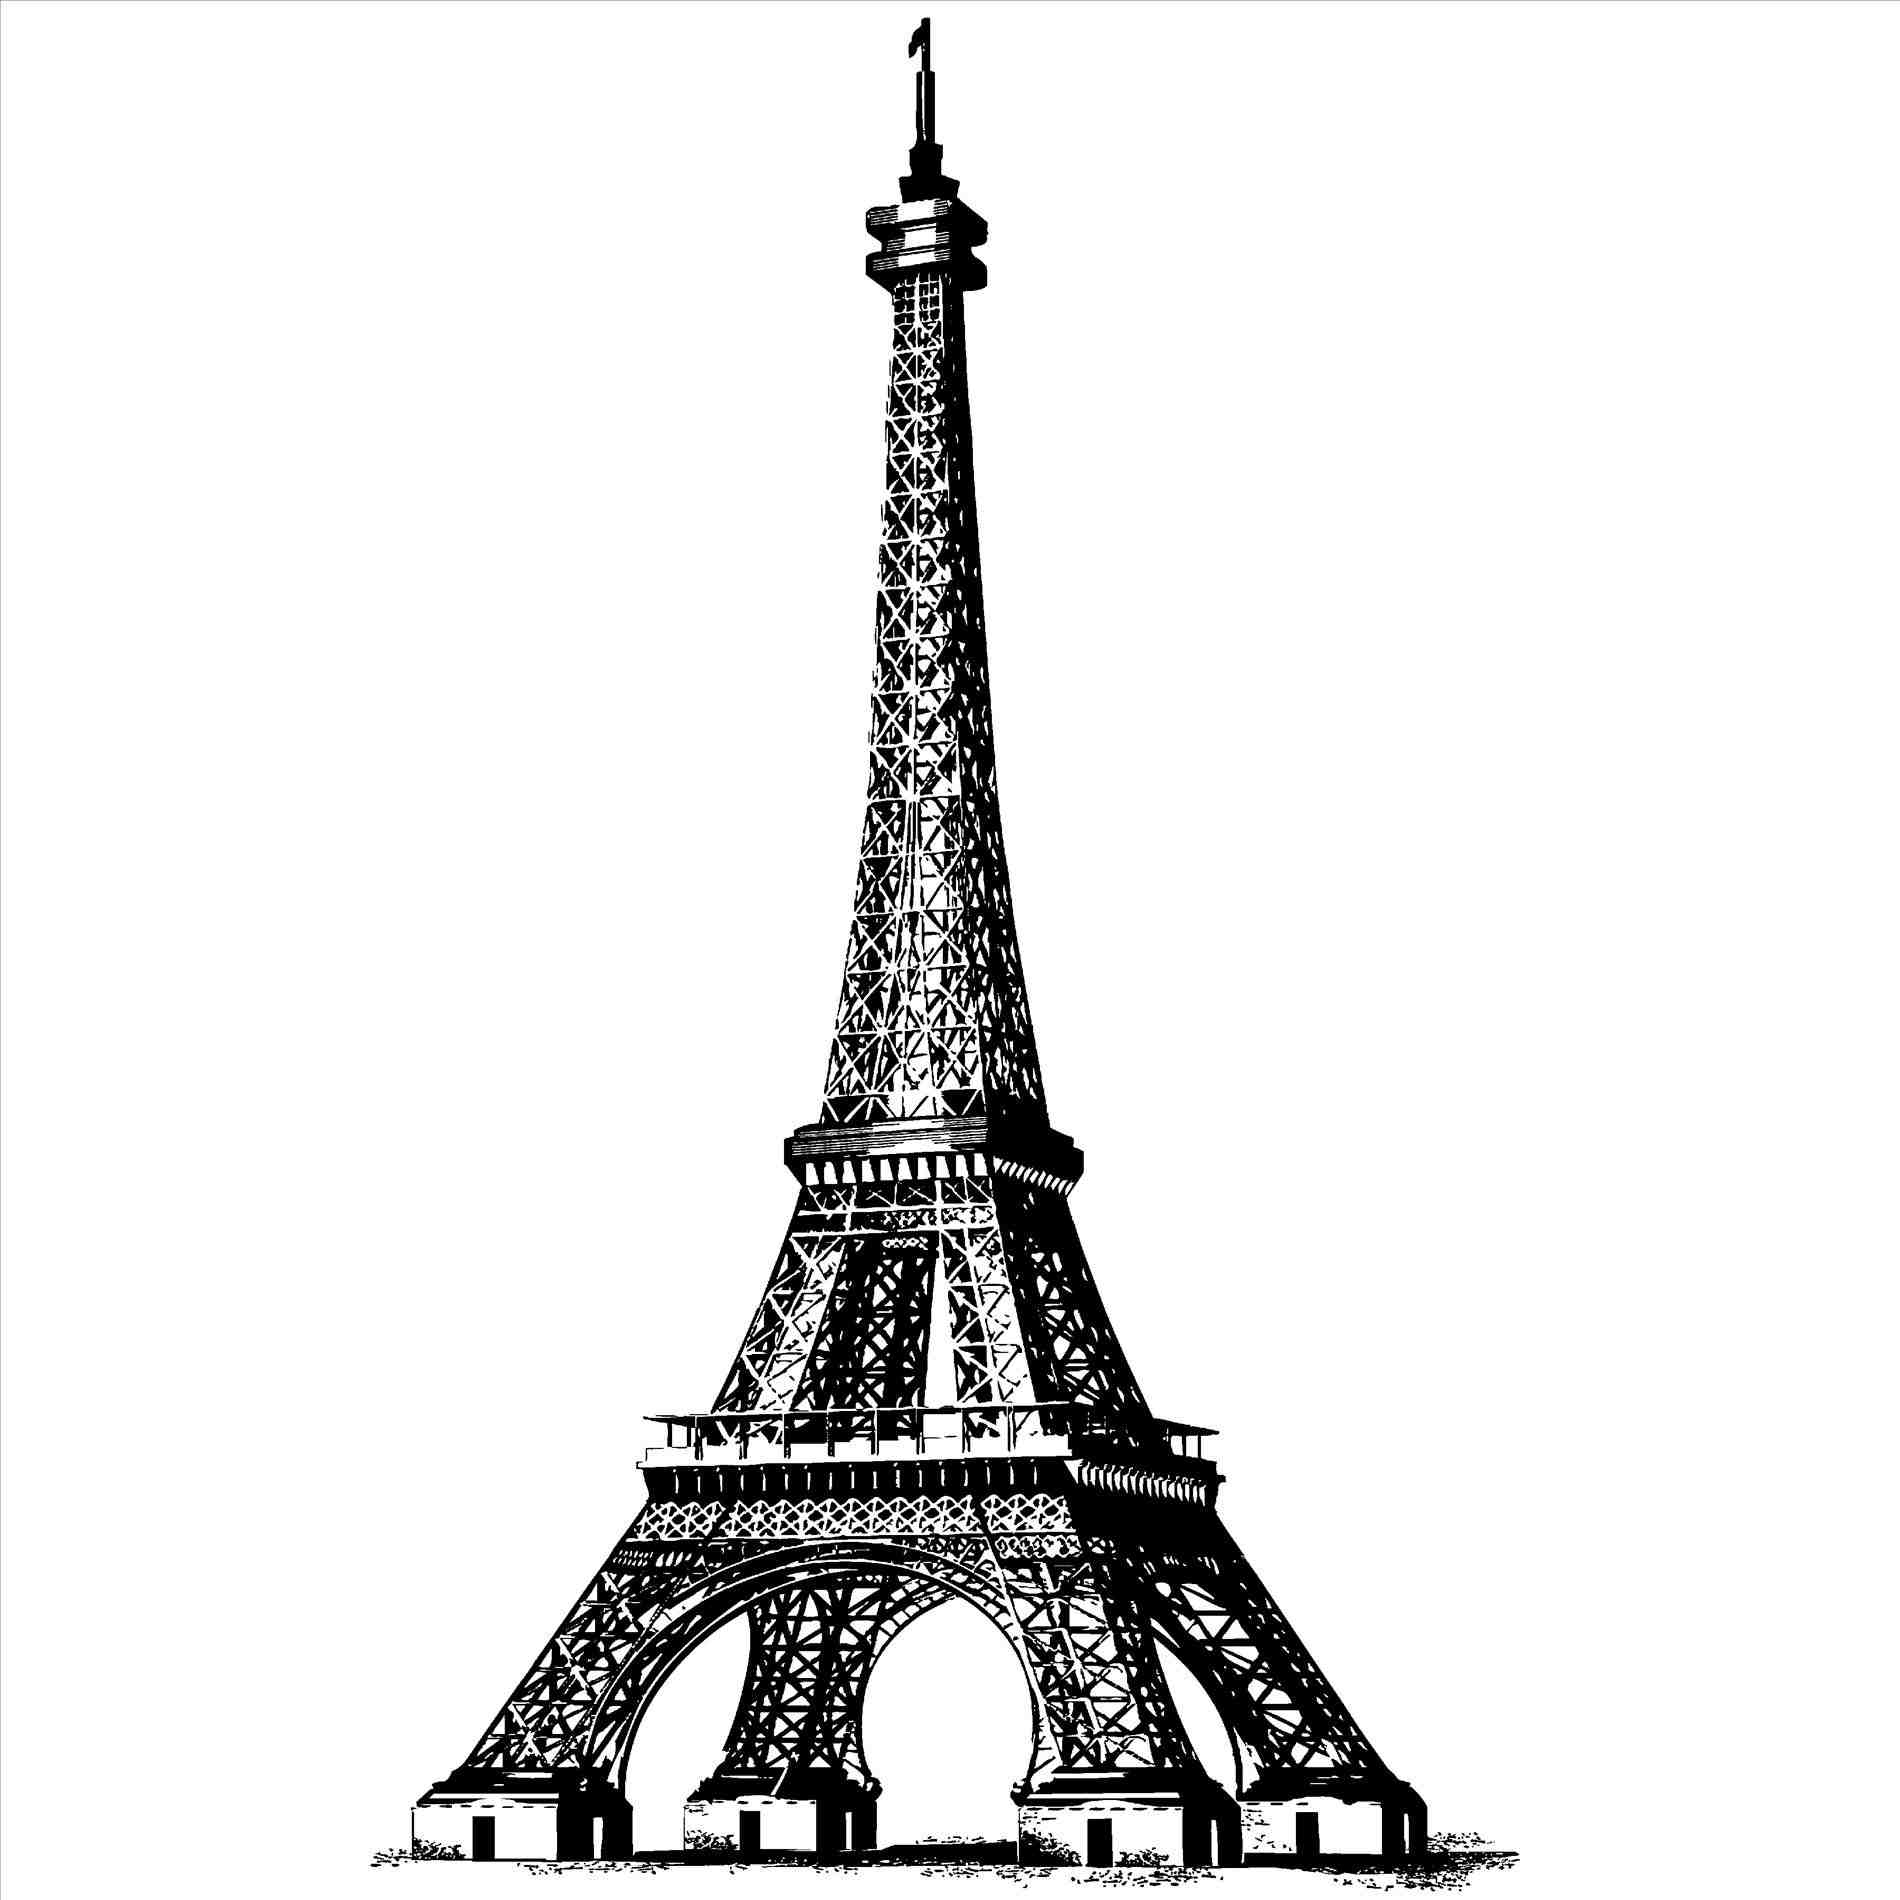 paris tower drawing paris eiffel tower drawing easy free download on clipartmag paris tower drawing